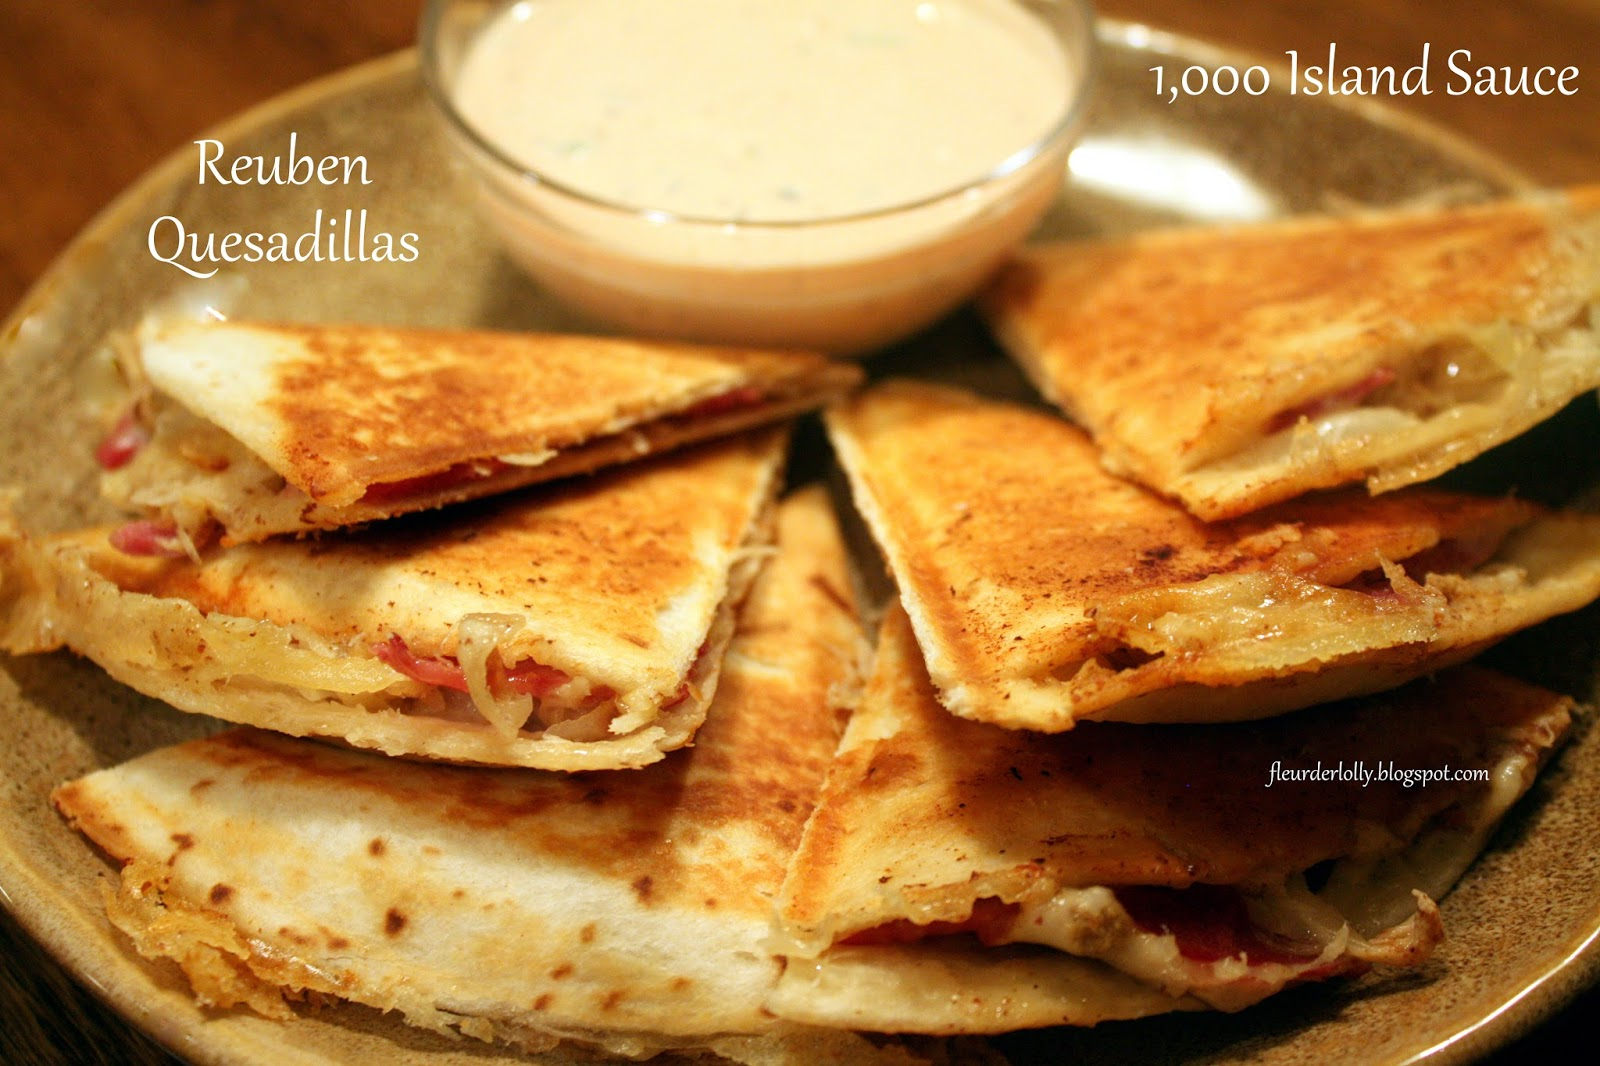 Fleur de Lolly: Reuben Quesadillas with 1,000 Island Sauce